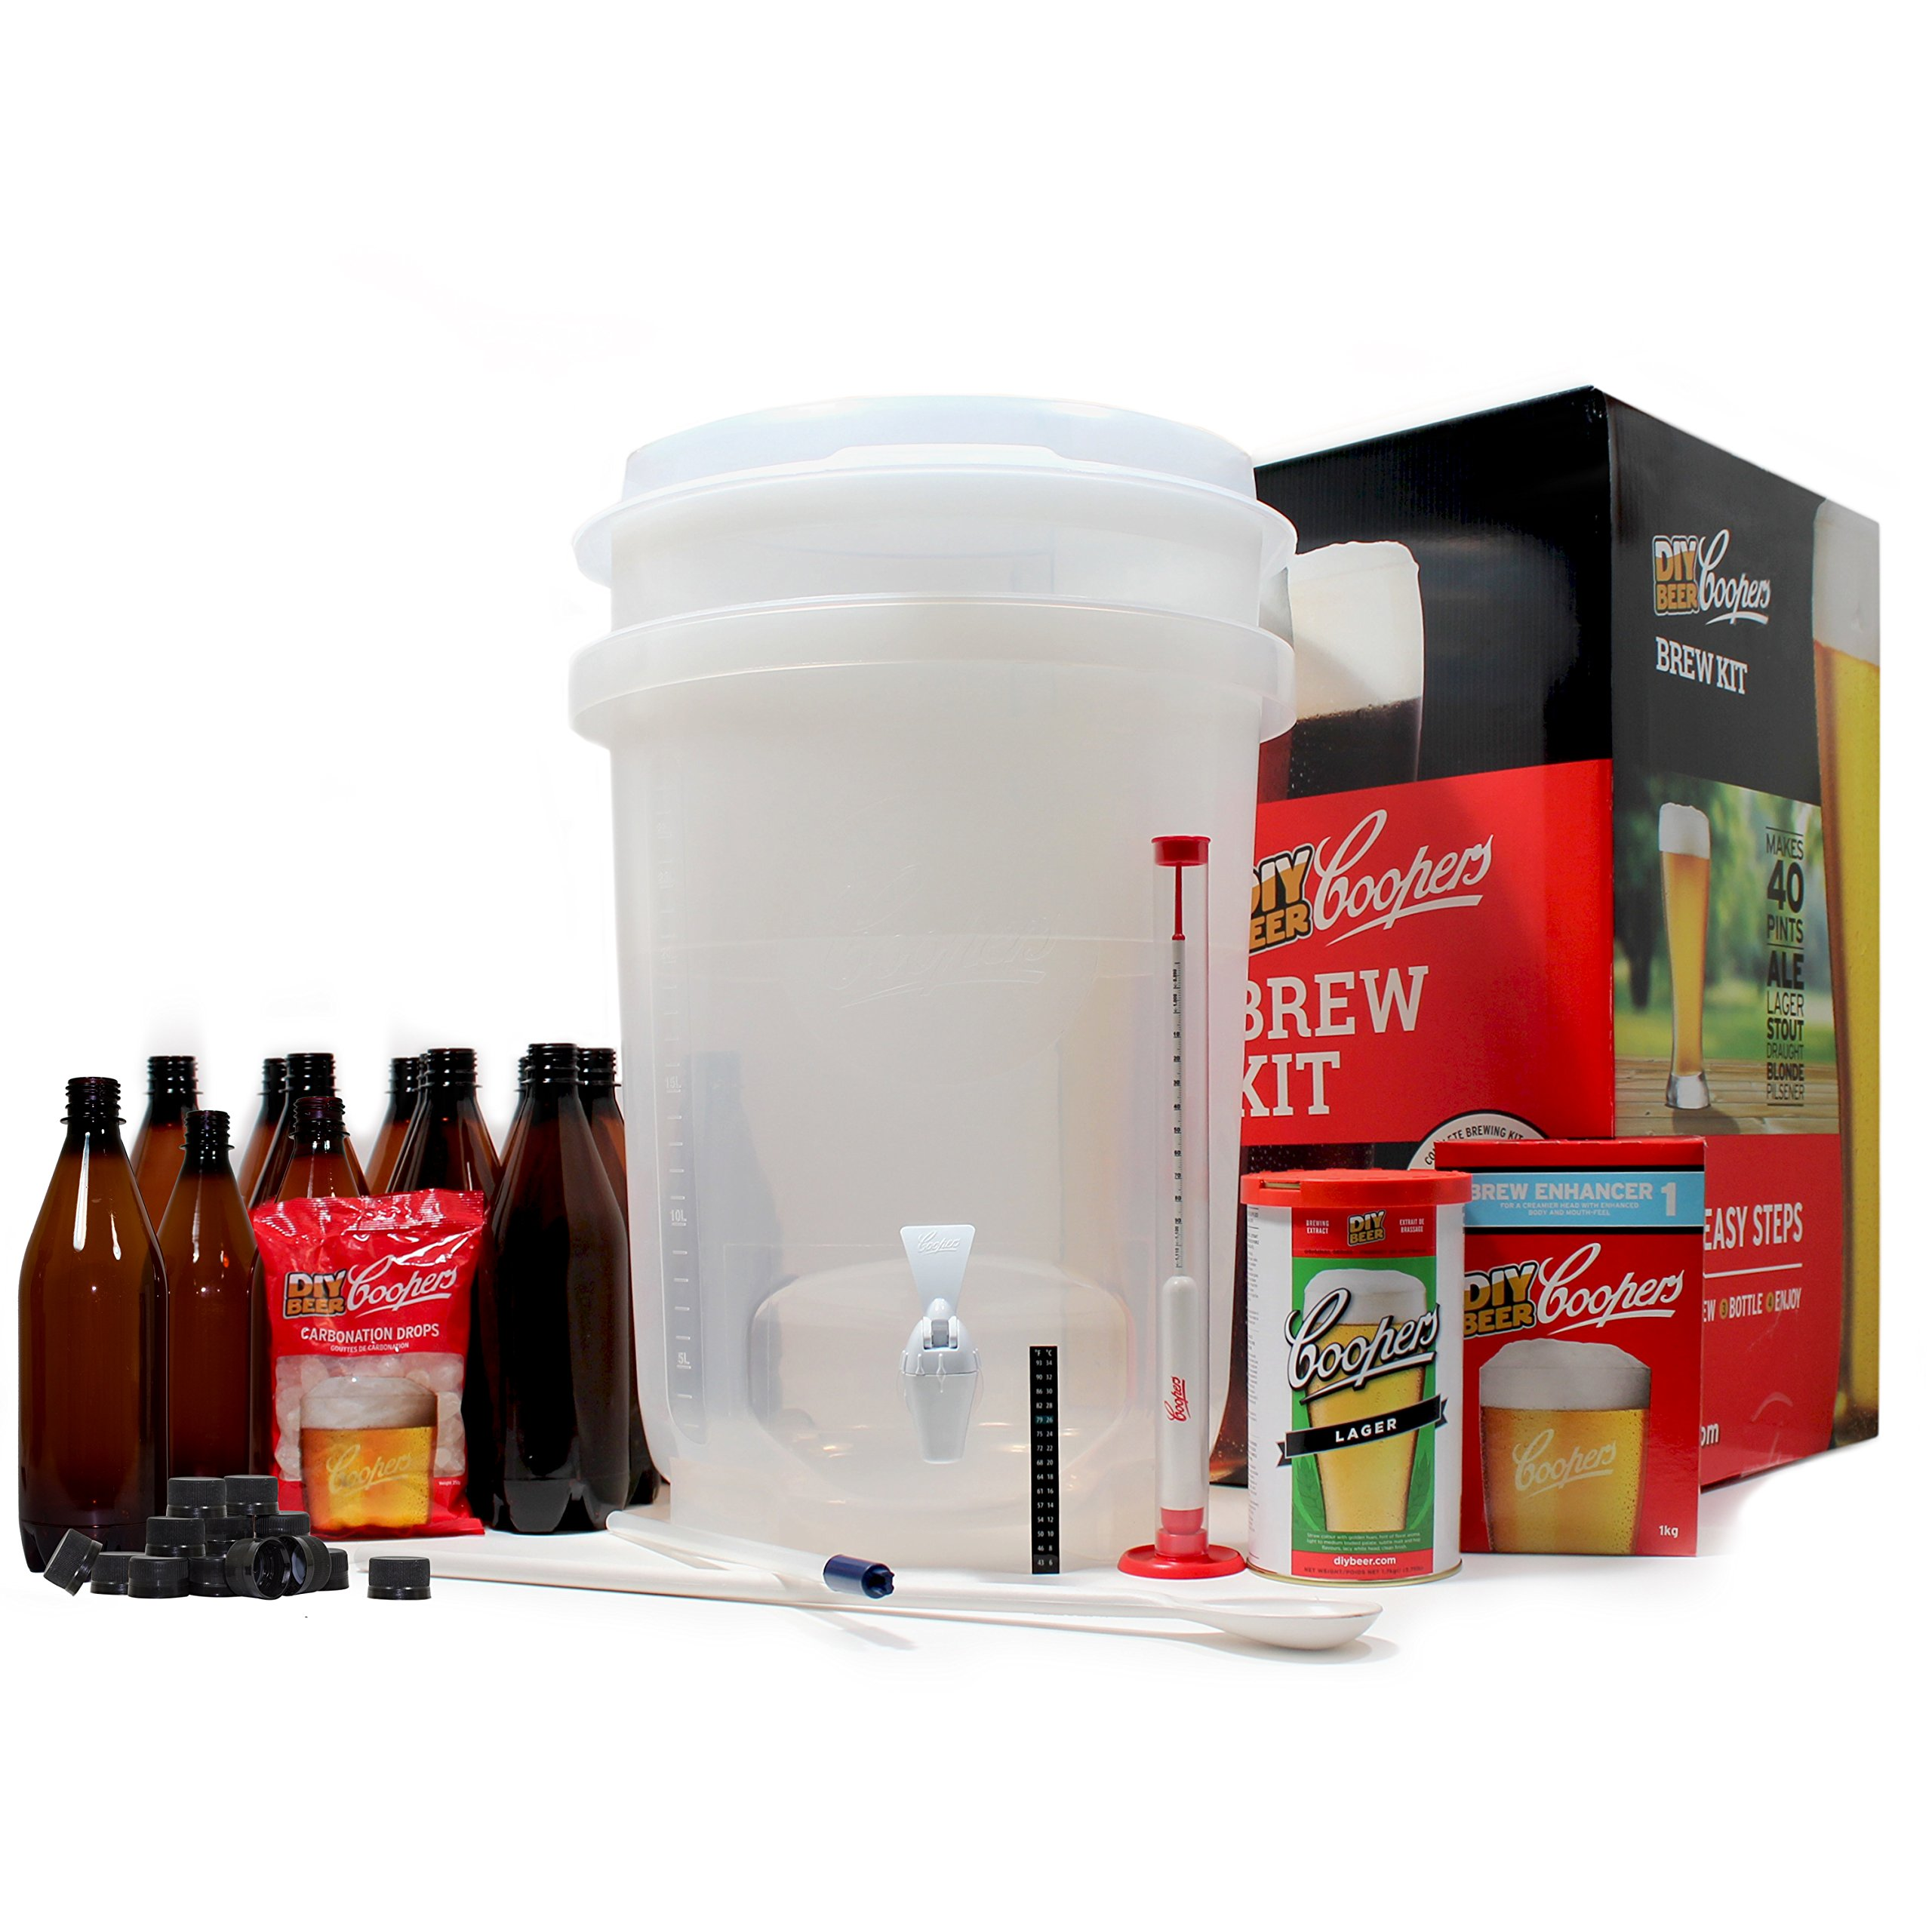 Coopers DIY Beer Home Brewing 6 Gallon All Inclusive Craft Beer Making Kit with Patented Brewing Fermenter, Beer Hydrometer, Brewing Ingredients, Bottles and Brewing Accessories by Coopers